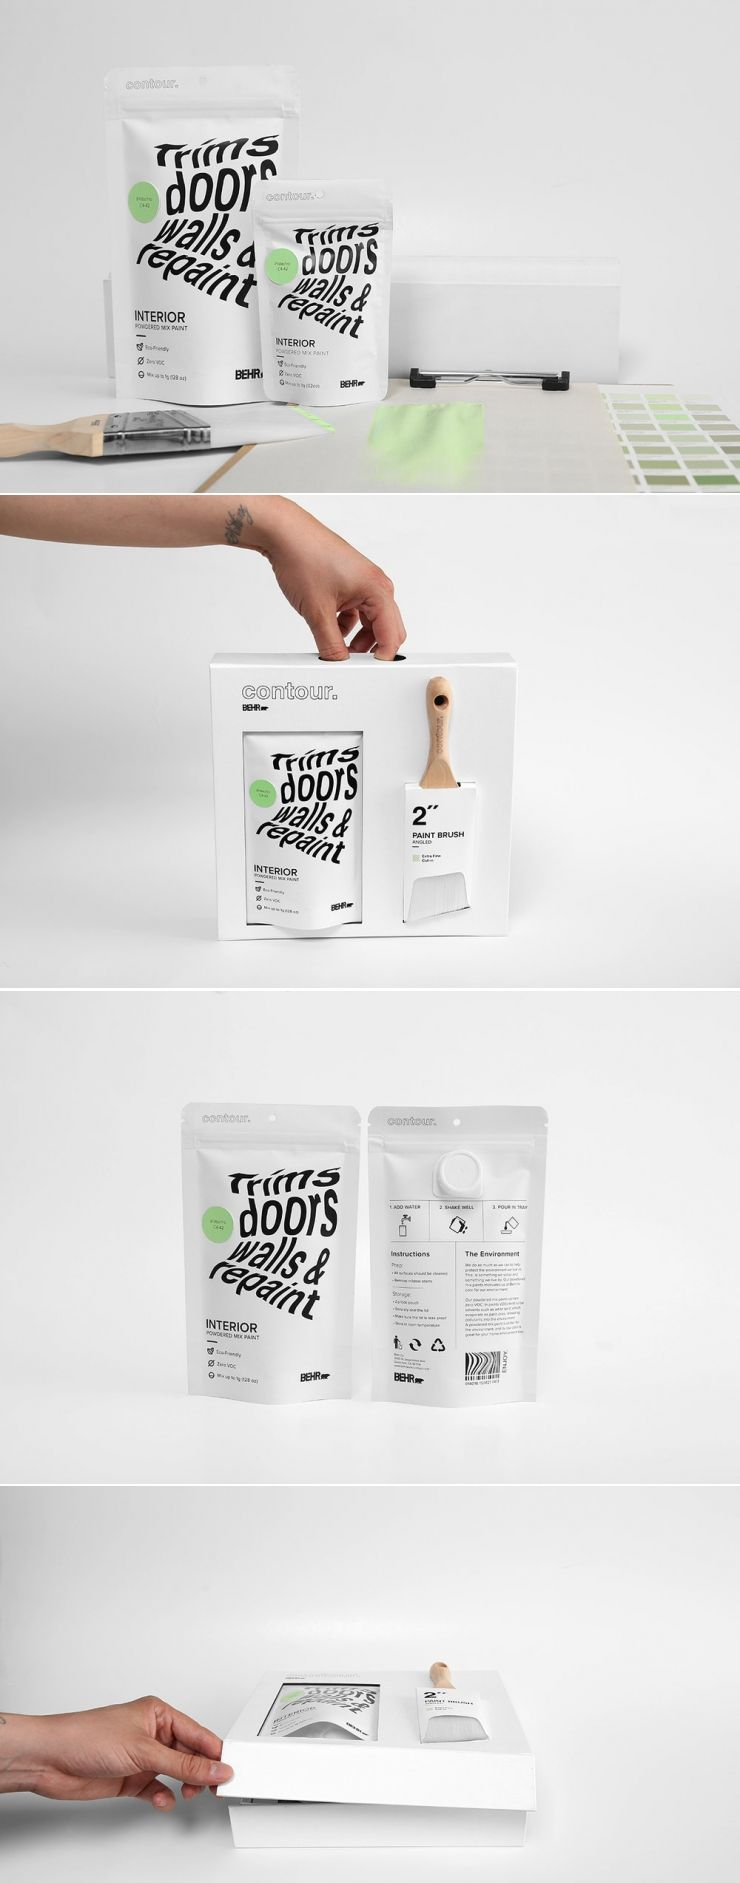 Check Out This New Take on Behr Paints — The Dieline | Packaging & Branding Design & Innovation News